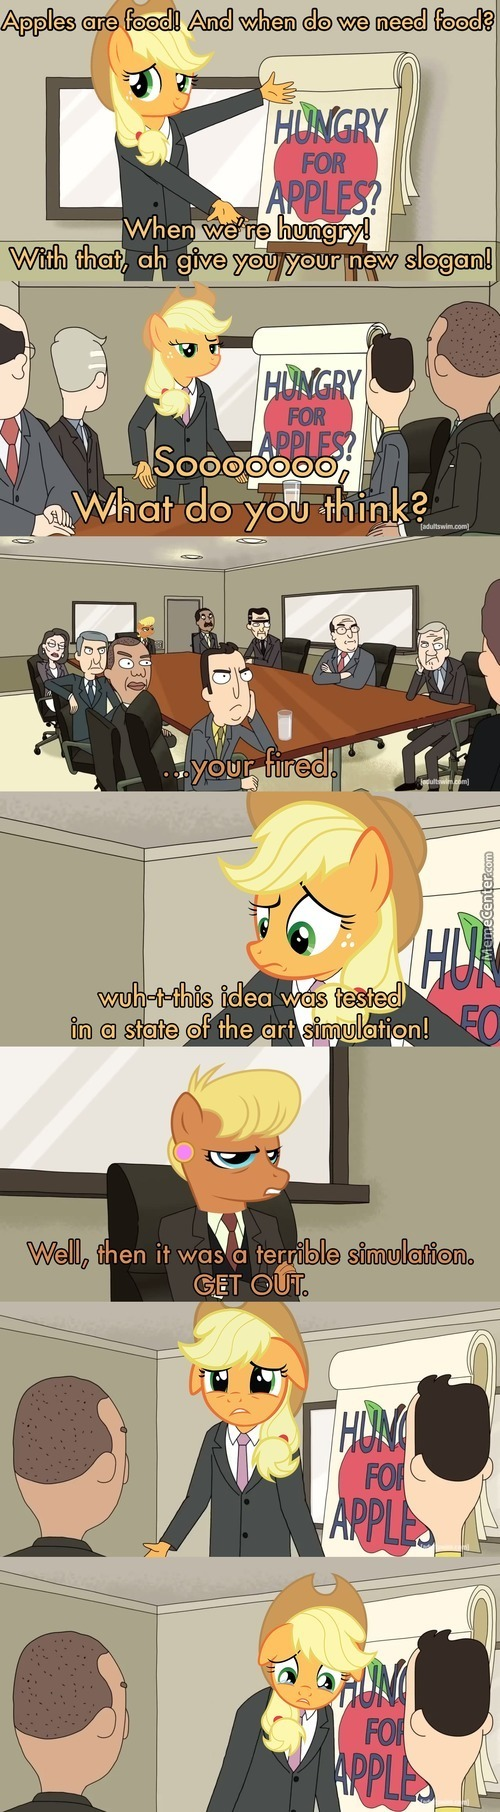 Applejack And Her Apple Slogan.